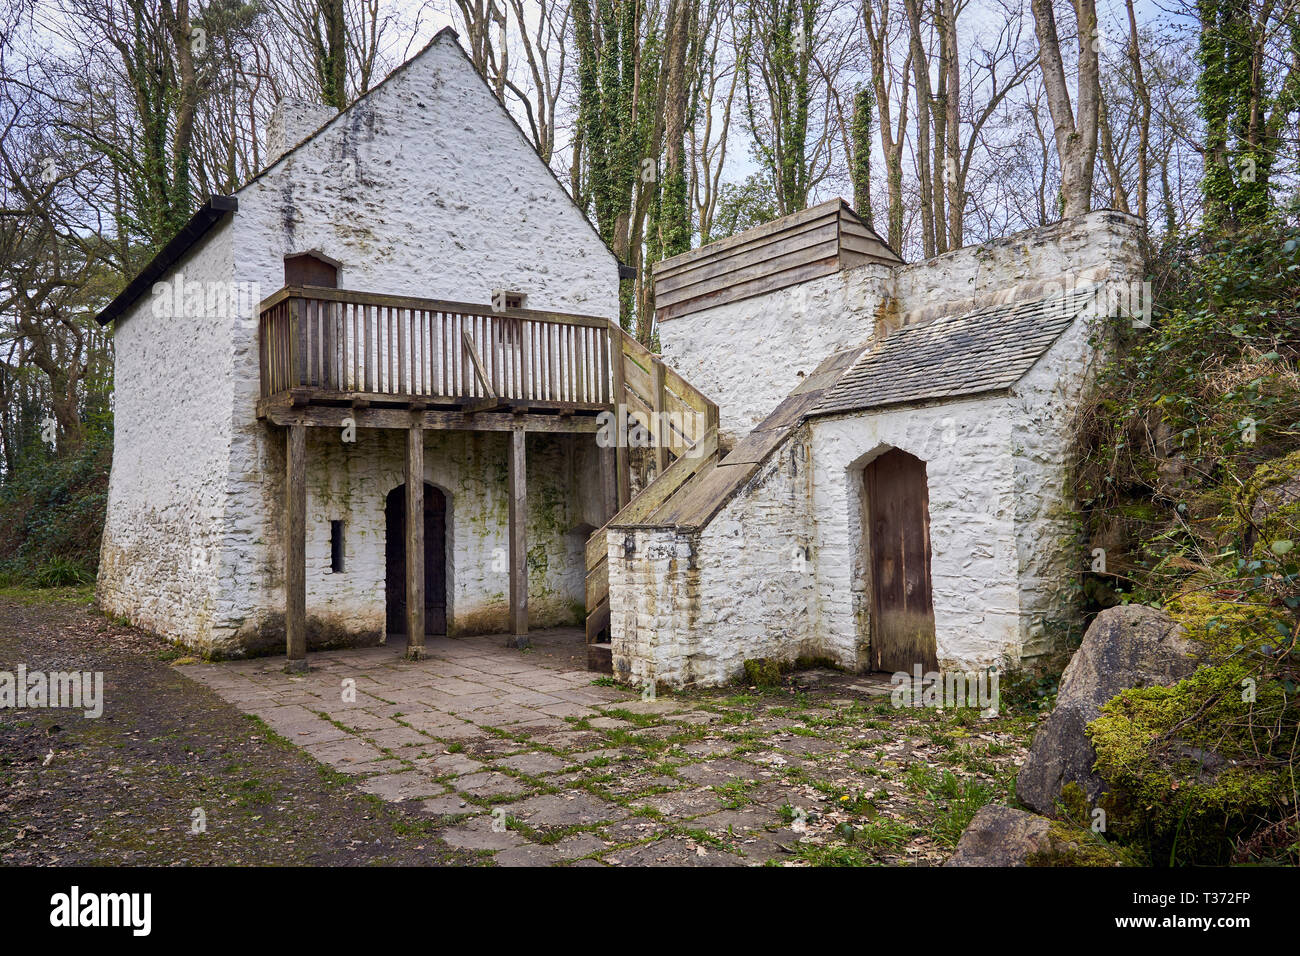 Tudor Merchant's House, St Fagans National Museum of History, Cardiff, South Wales - Stock Image